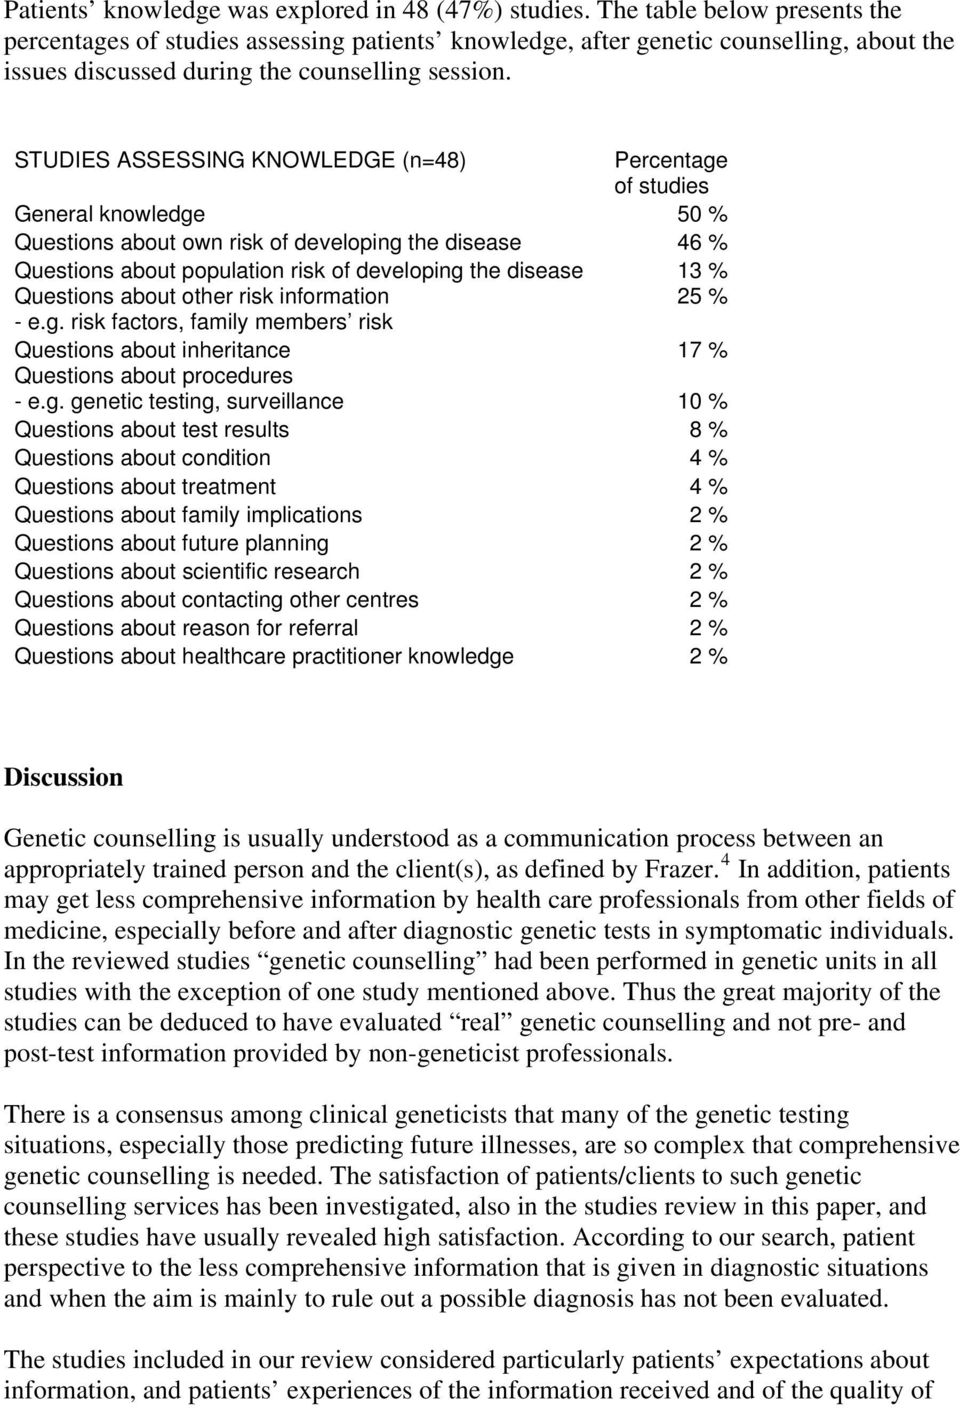 STUDIES ASSESSING KNOWLEDGE (n=48) Percentage of studies General knowledge 50 % Questions about own risk of developing the disease 46 % Questions about population risk of developing the disease 13 %